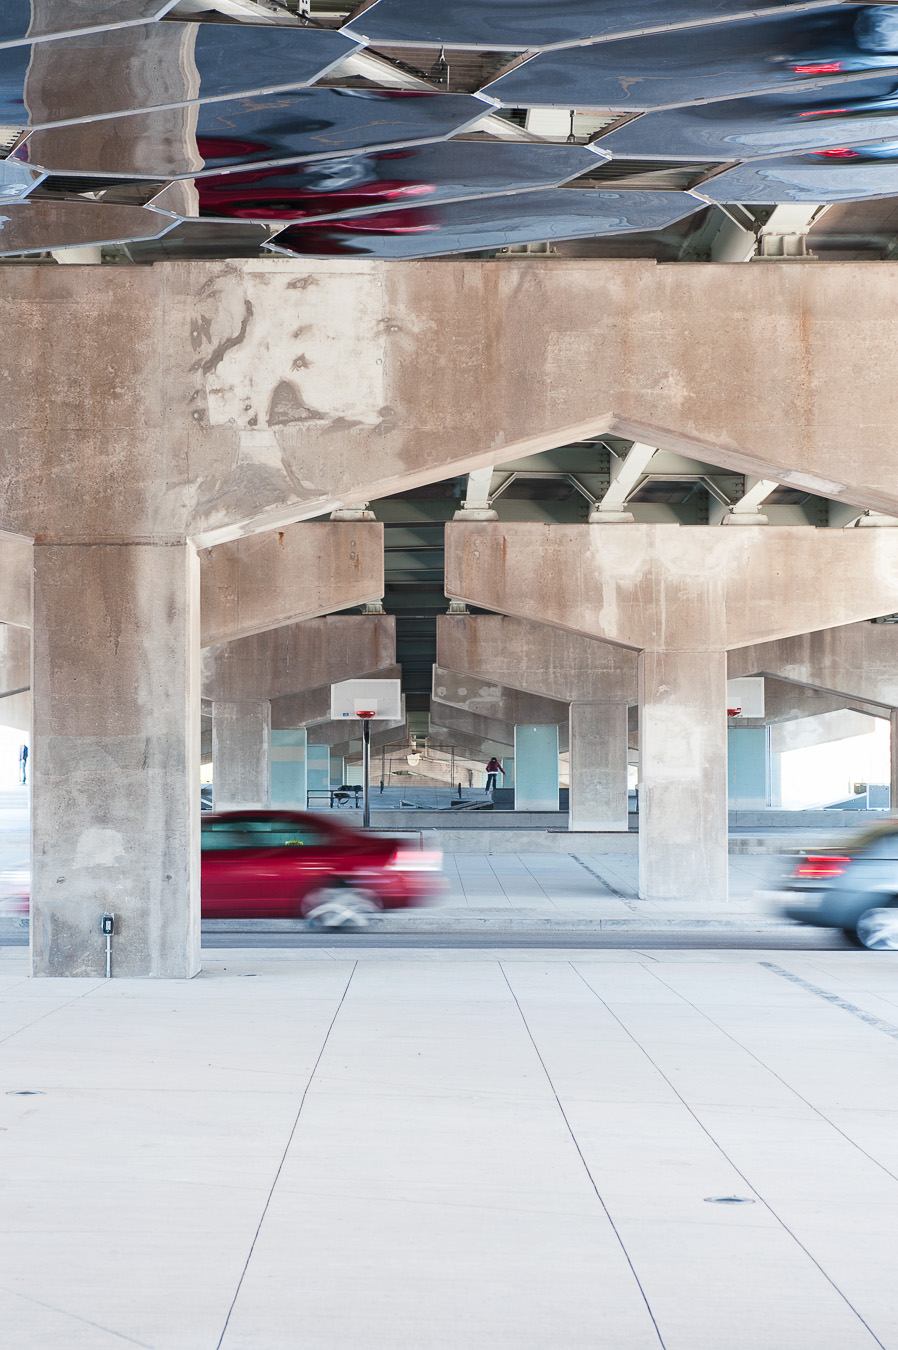 201209_PFS_toronto_underpass-31-Edit.jpg